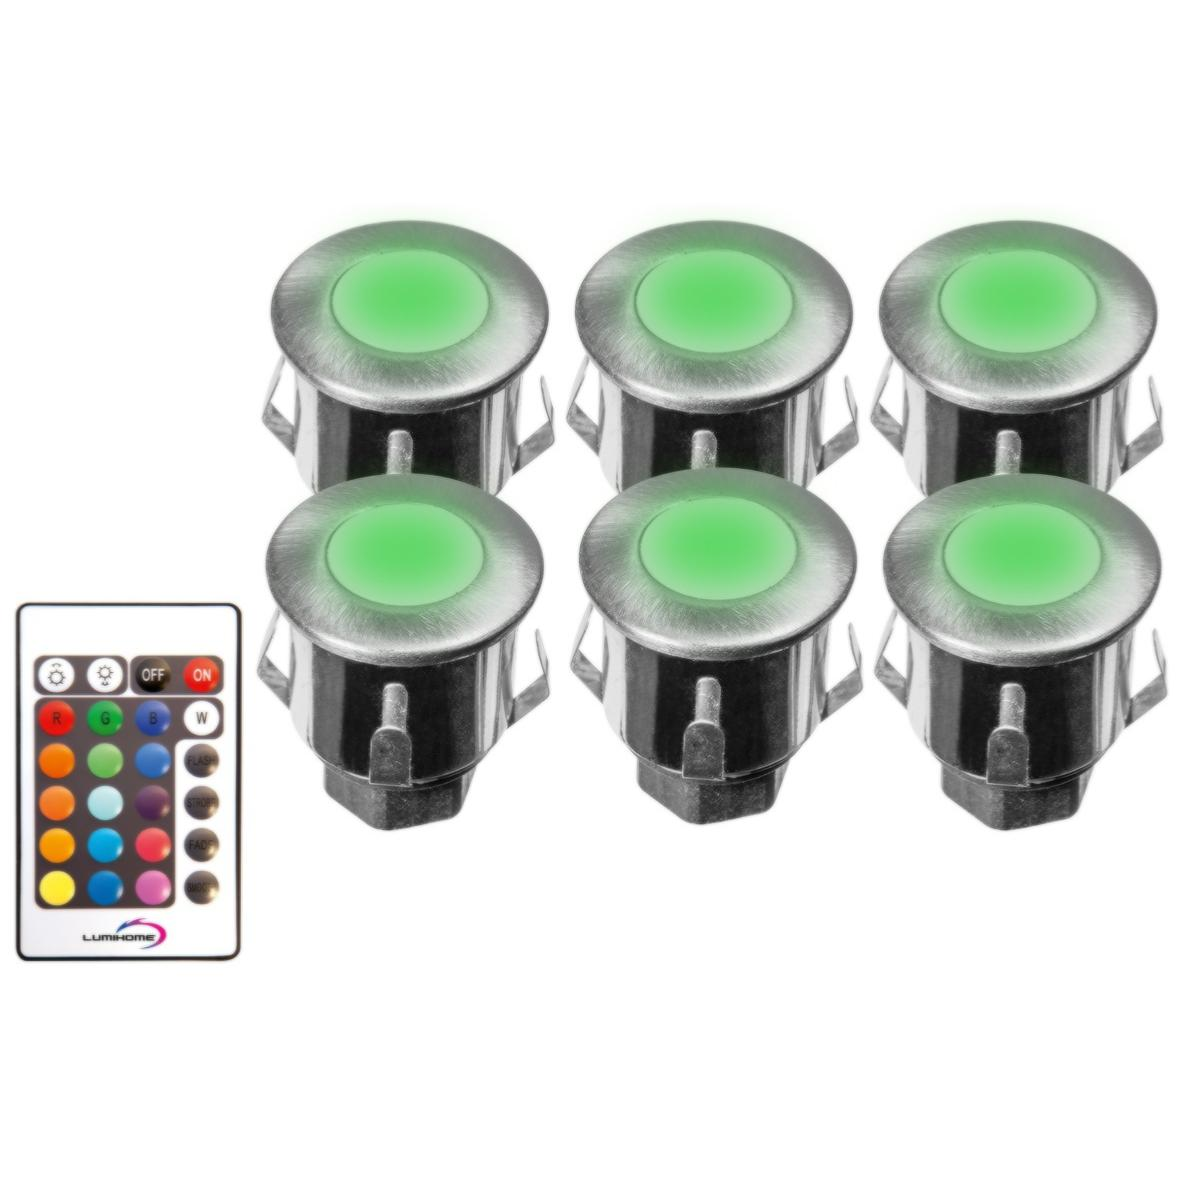 Spot terrasse piscine rgb 12v led ip67 kit de 6 spot led rgb for Spot exterieur encastrable plafond